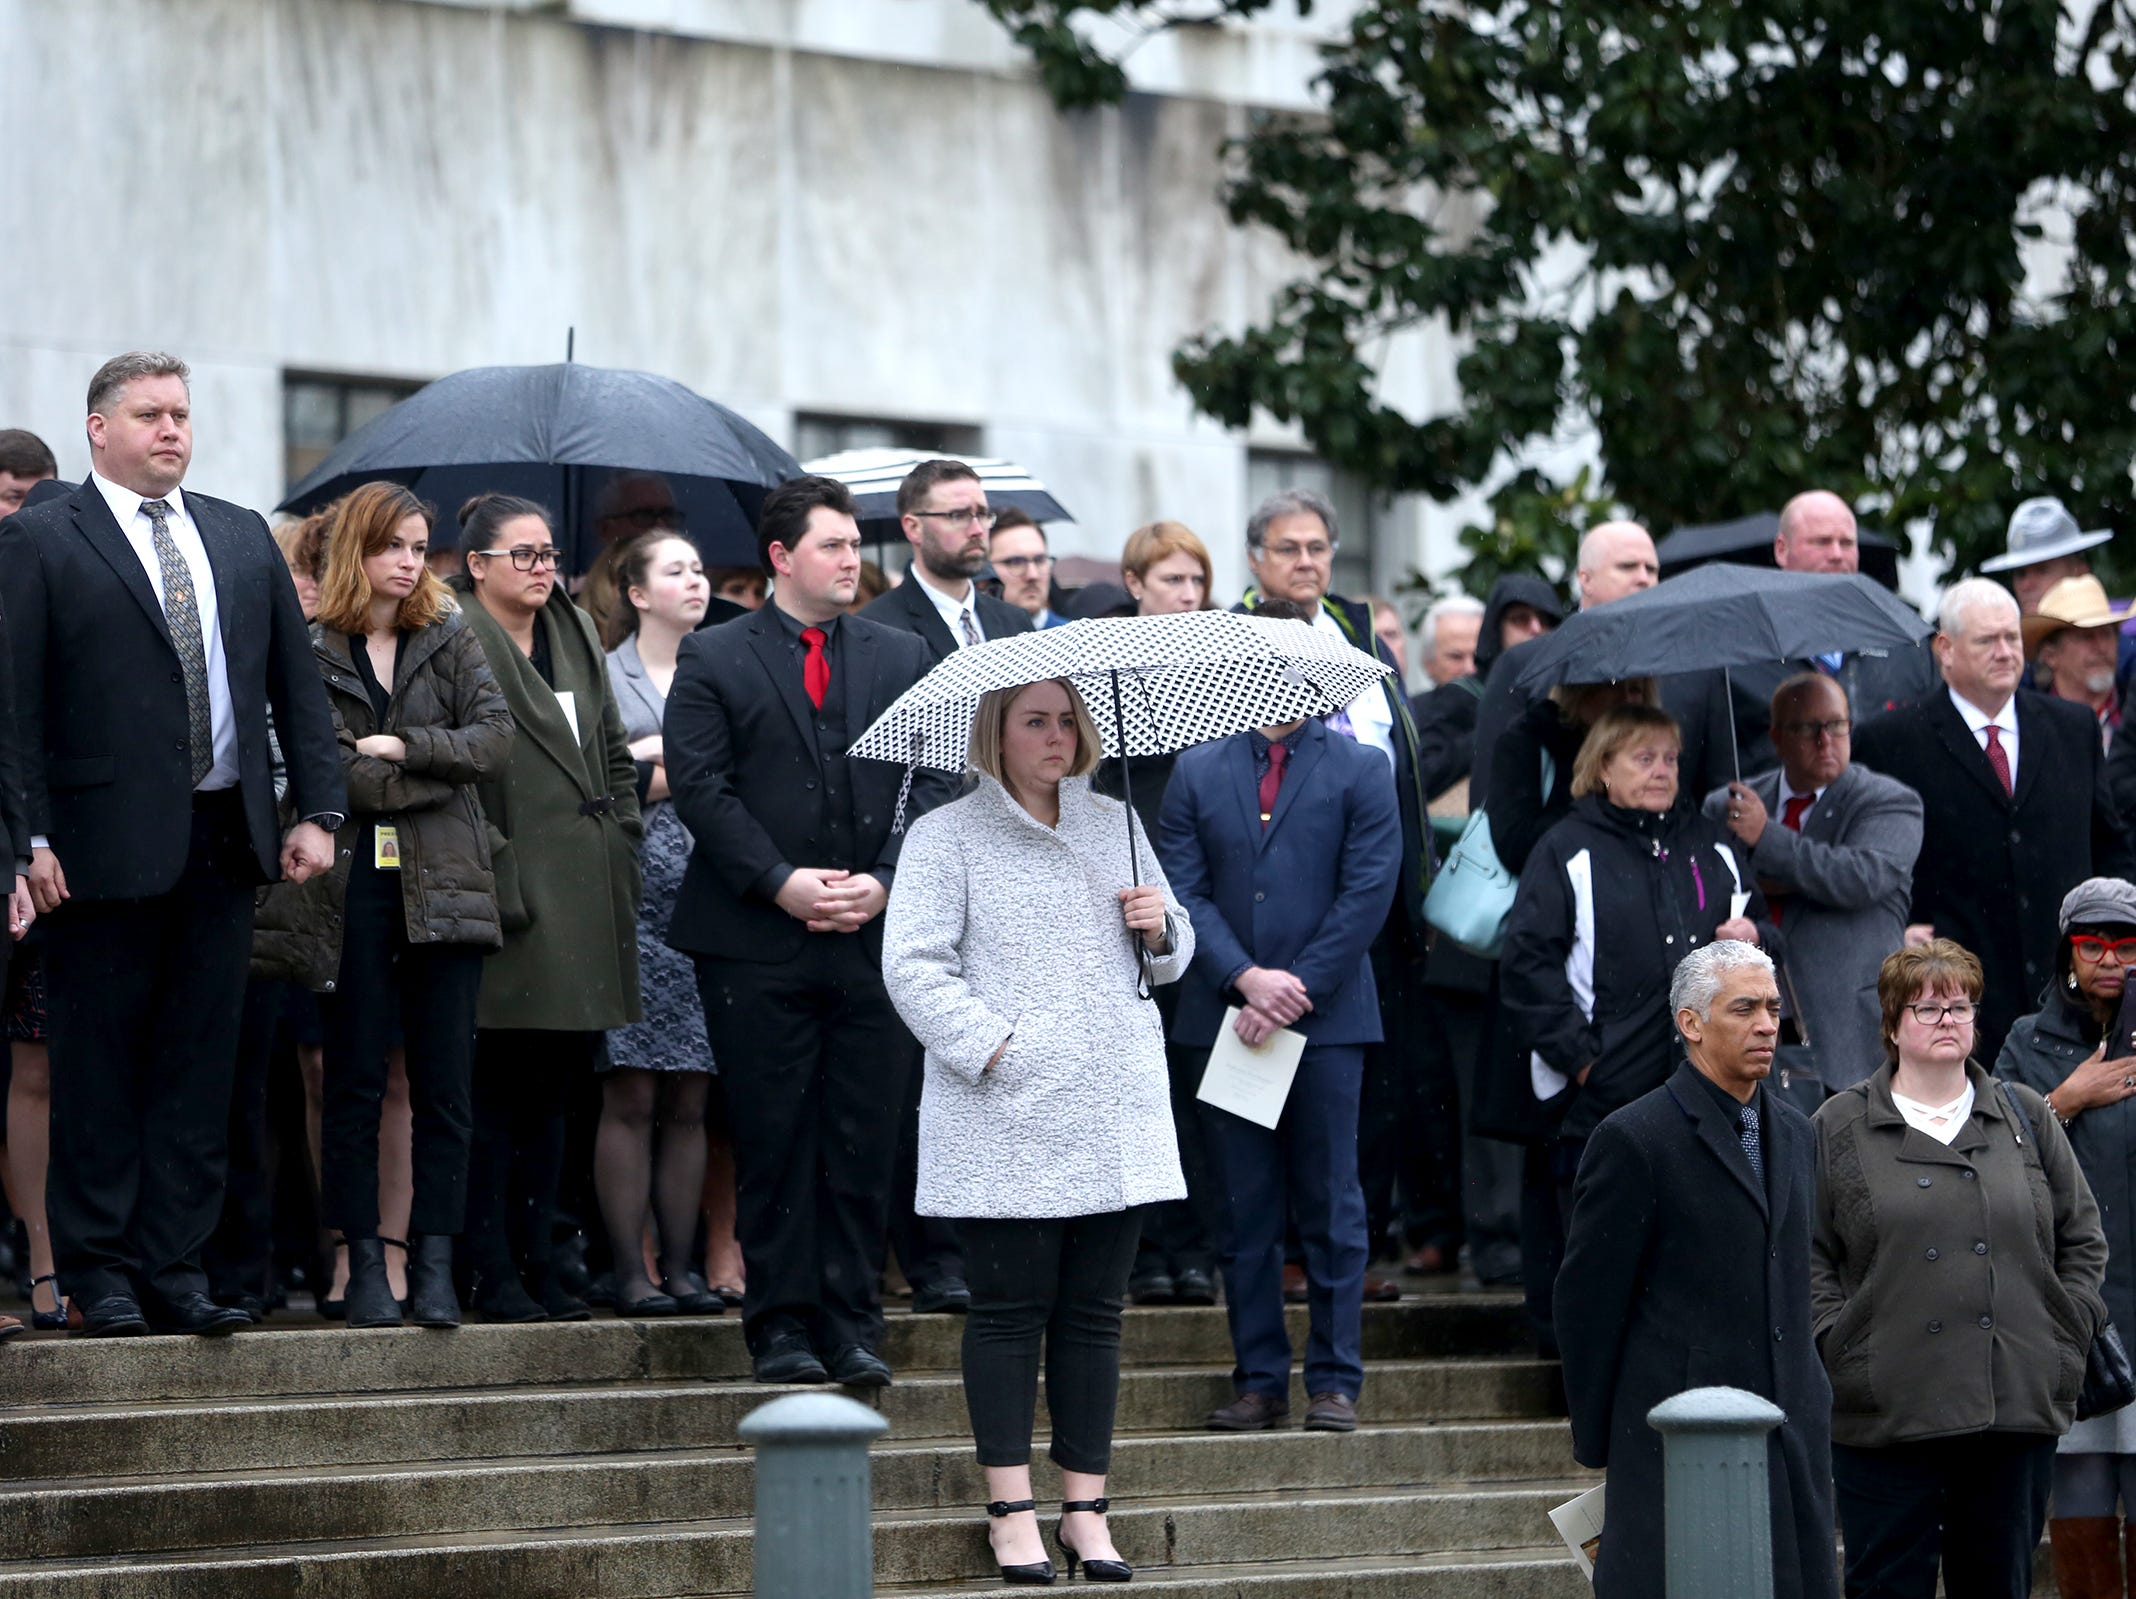 Spectators watch as the casket of Secretary of State Dennis Richardson leaves at the Oregon State Capitol in Salem on Wednesday, March 6, 2019.